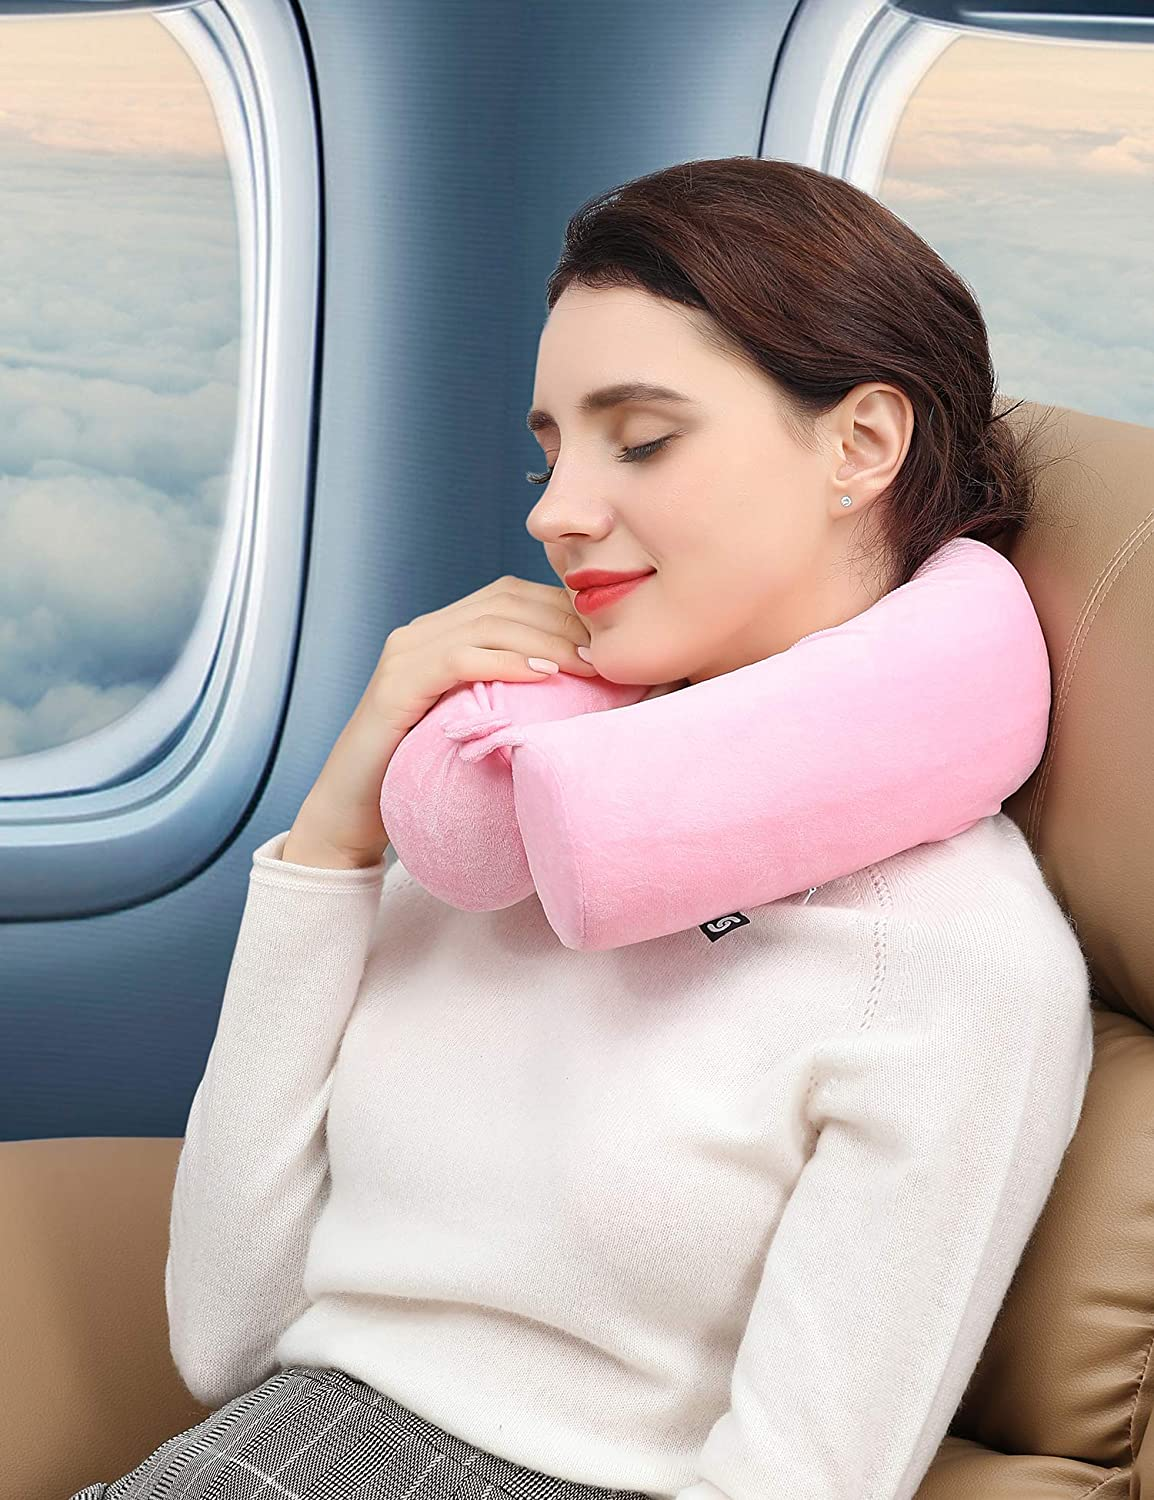 Bendable Roll Pillow with Washable Soft Cover Pink for Traveling on Airplane LEISIME Twist Memory Foam Travel Pillow for Neck Adjustable Chin Lumbar and Leg Support Bus or at Home Train